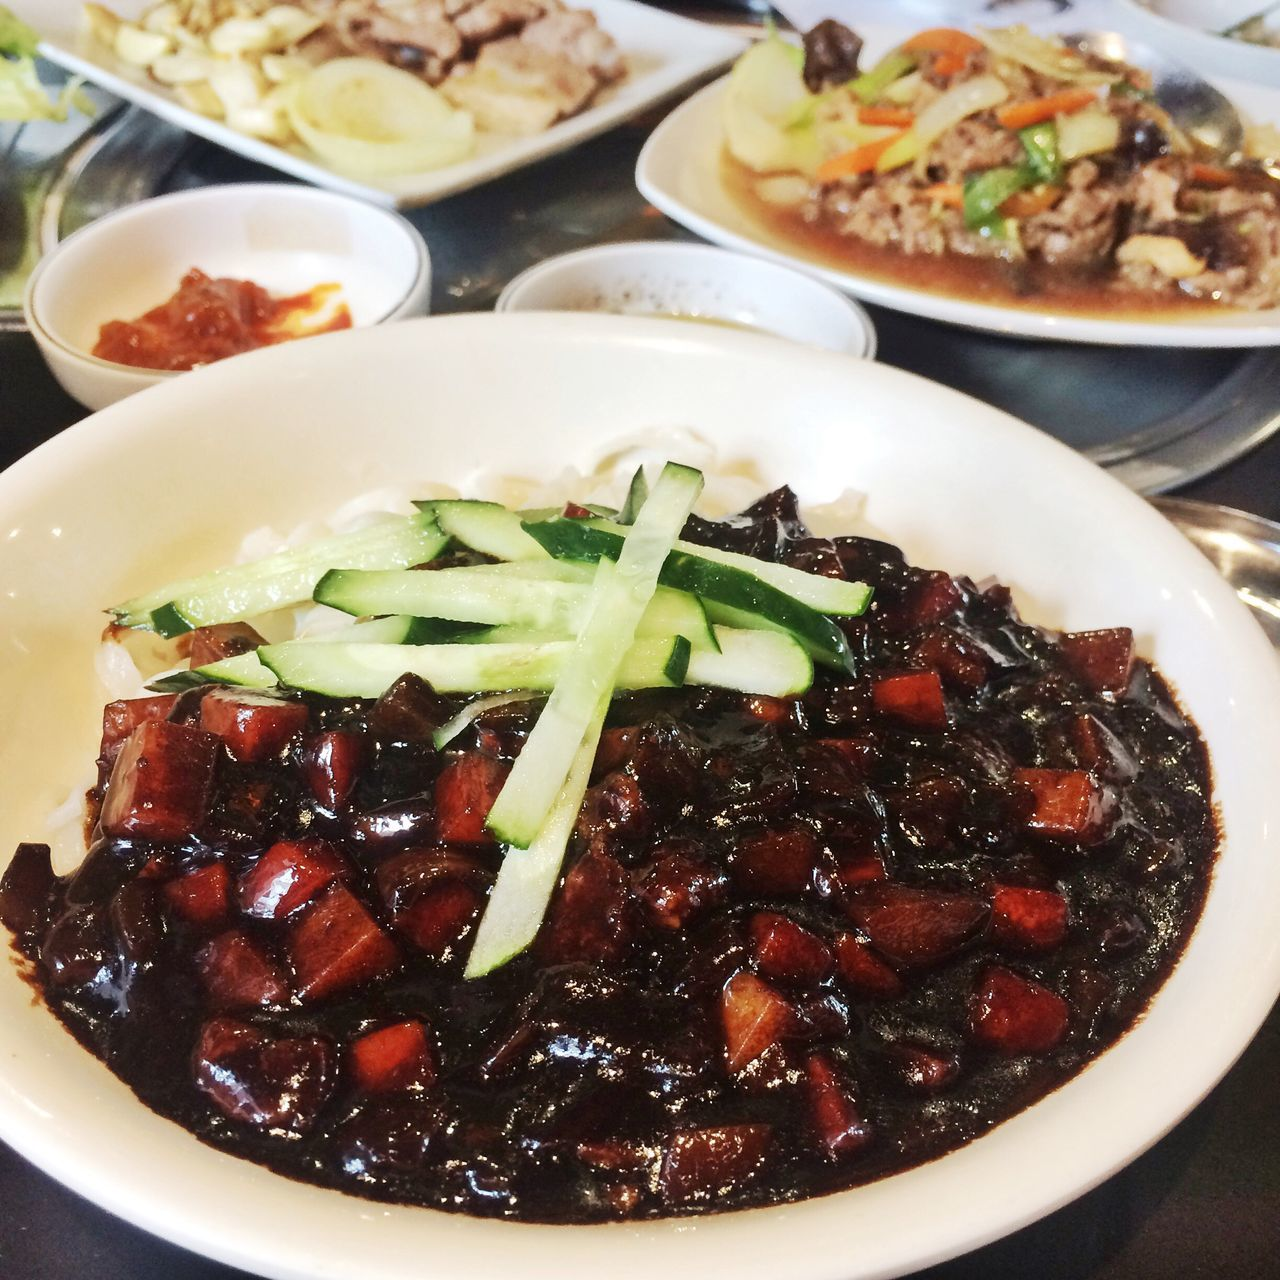 Food Korean Food Koreanfood KoreanFoods Jajjangmyeon Jajangmyeon Jajangmyun Food Photography Foodphotography Food Photos Food Photogrphy Noodles Noodle BlackbeanNoodles Blackbean Noodles Korean Restaurant Korean Foods Korean Noodles